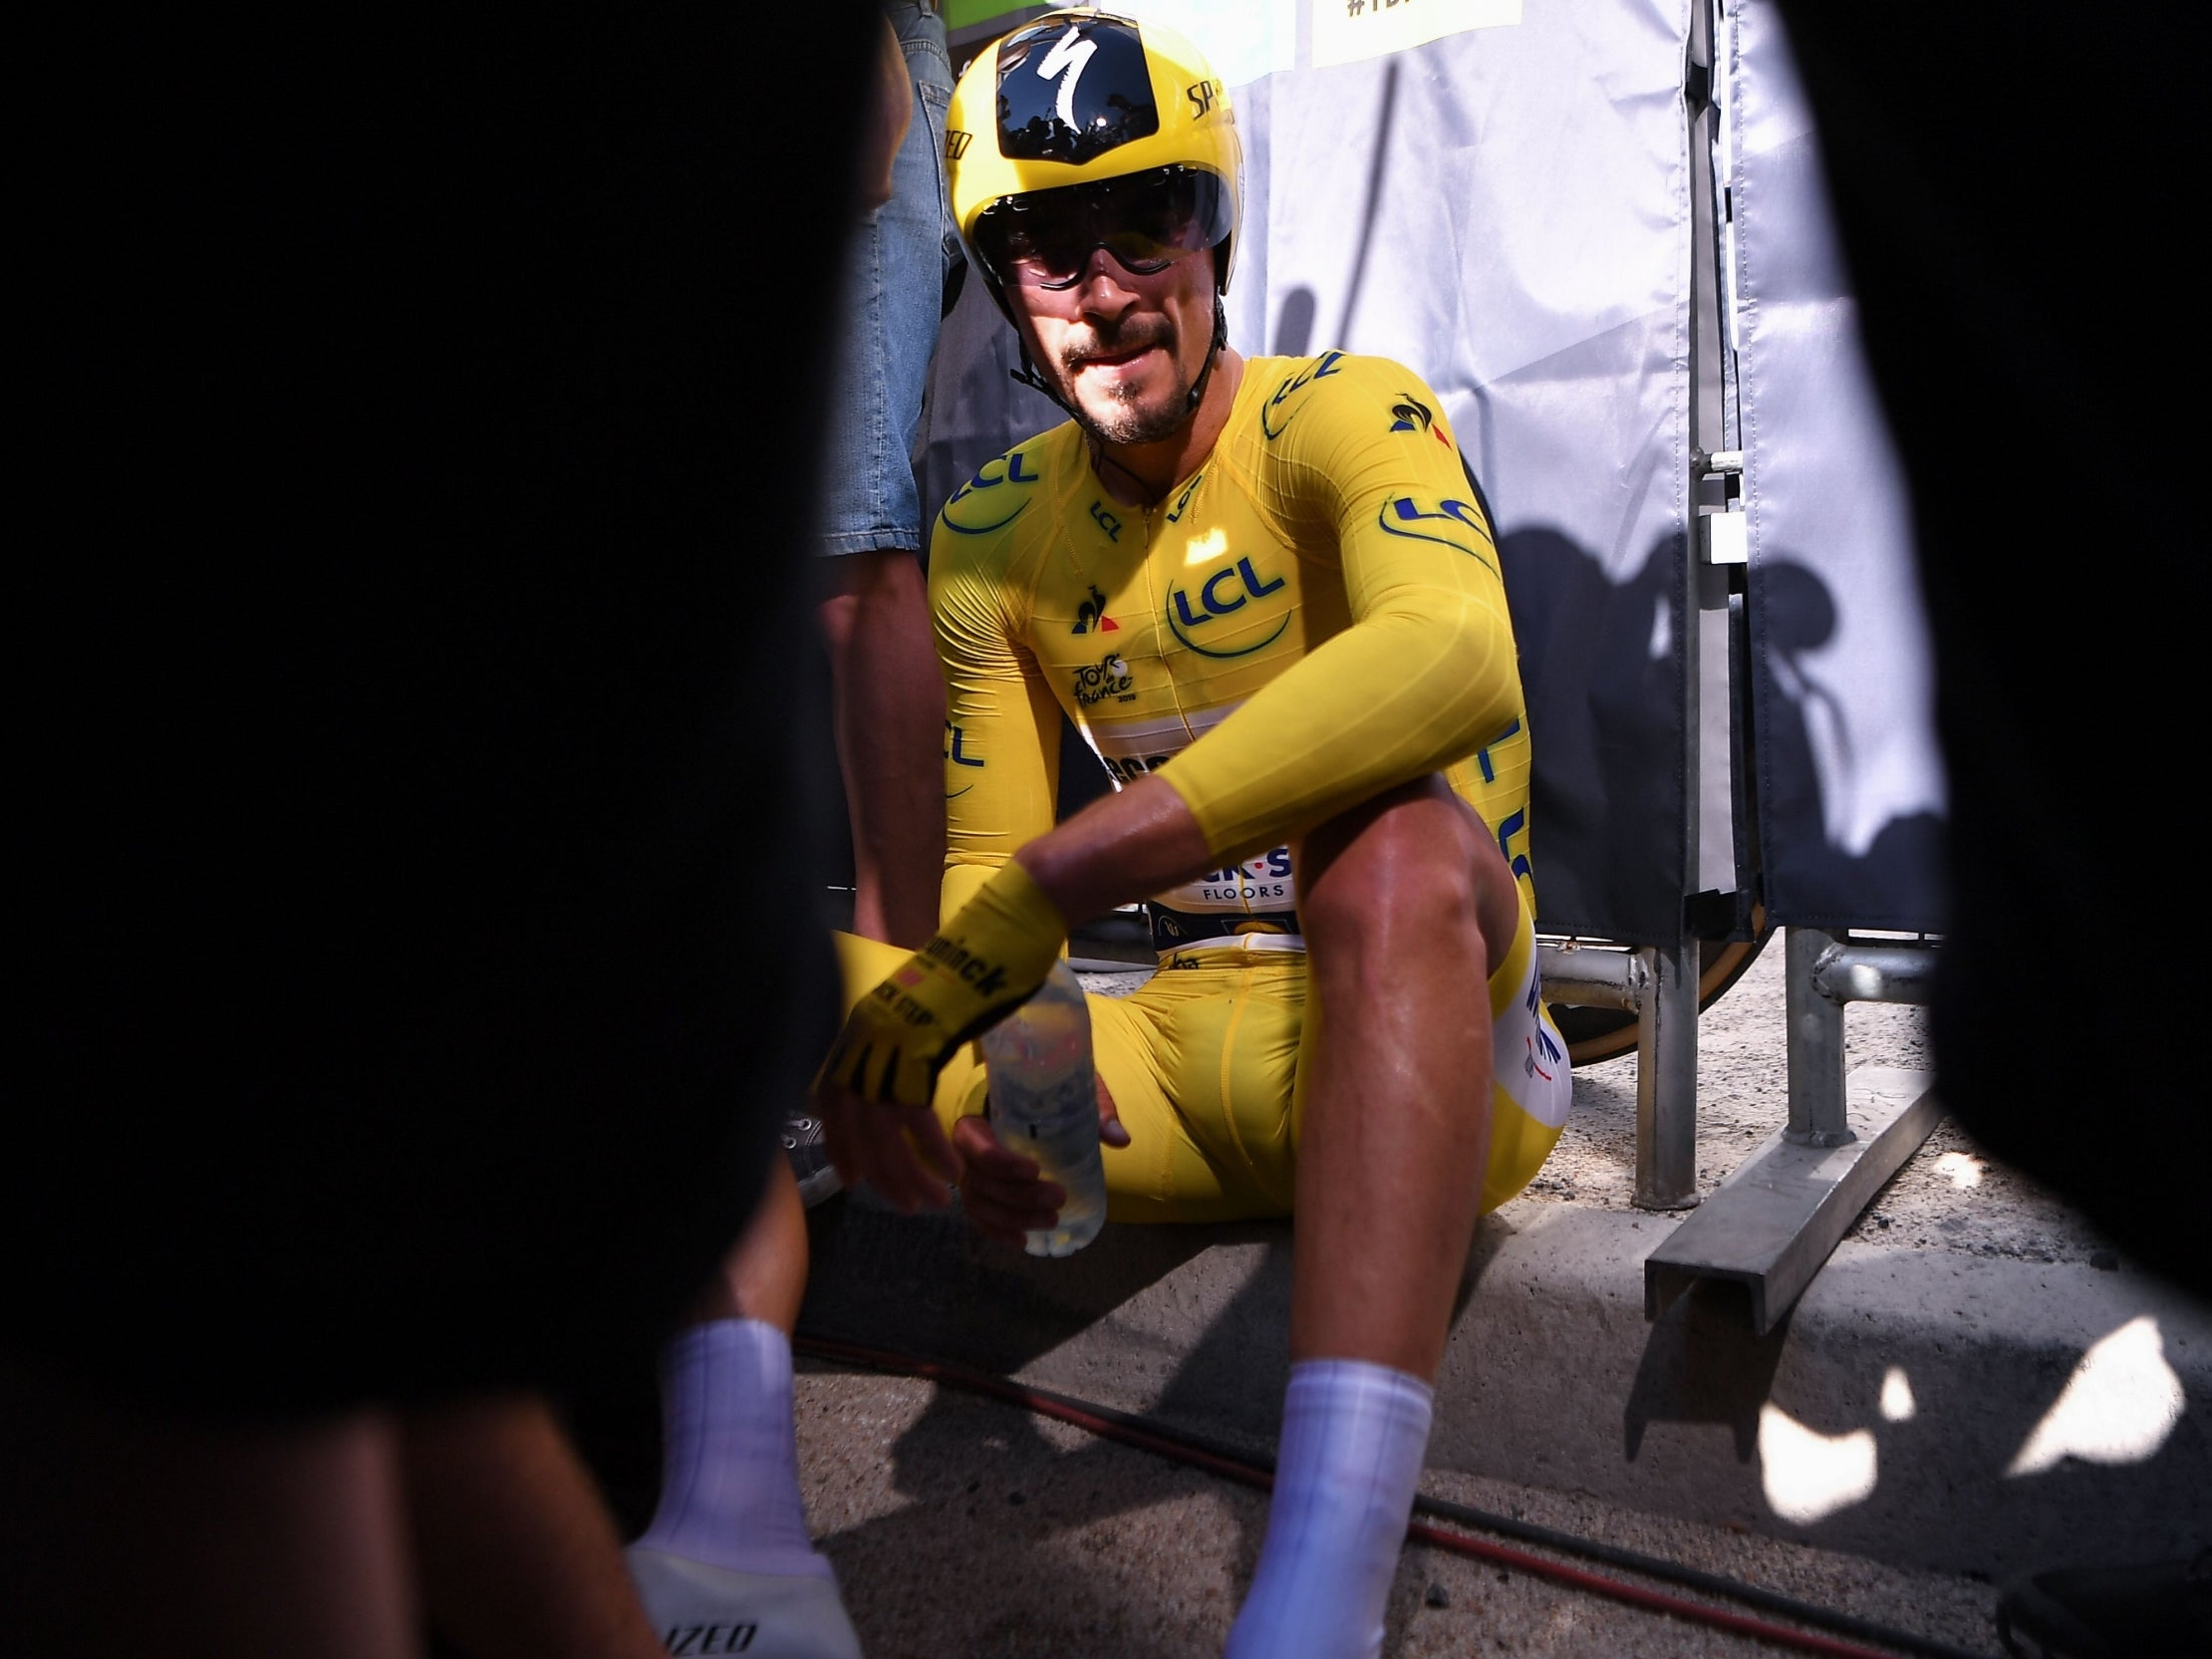 Tour de France 2019: The 80 best photos after Egan Bernal wins one of the best races in years